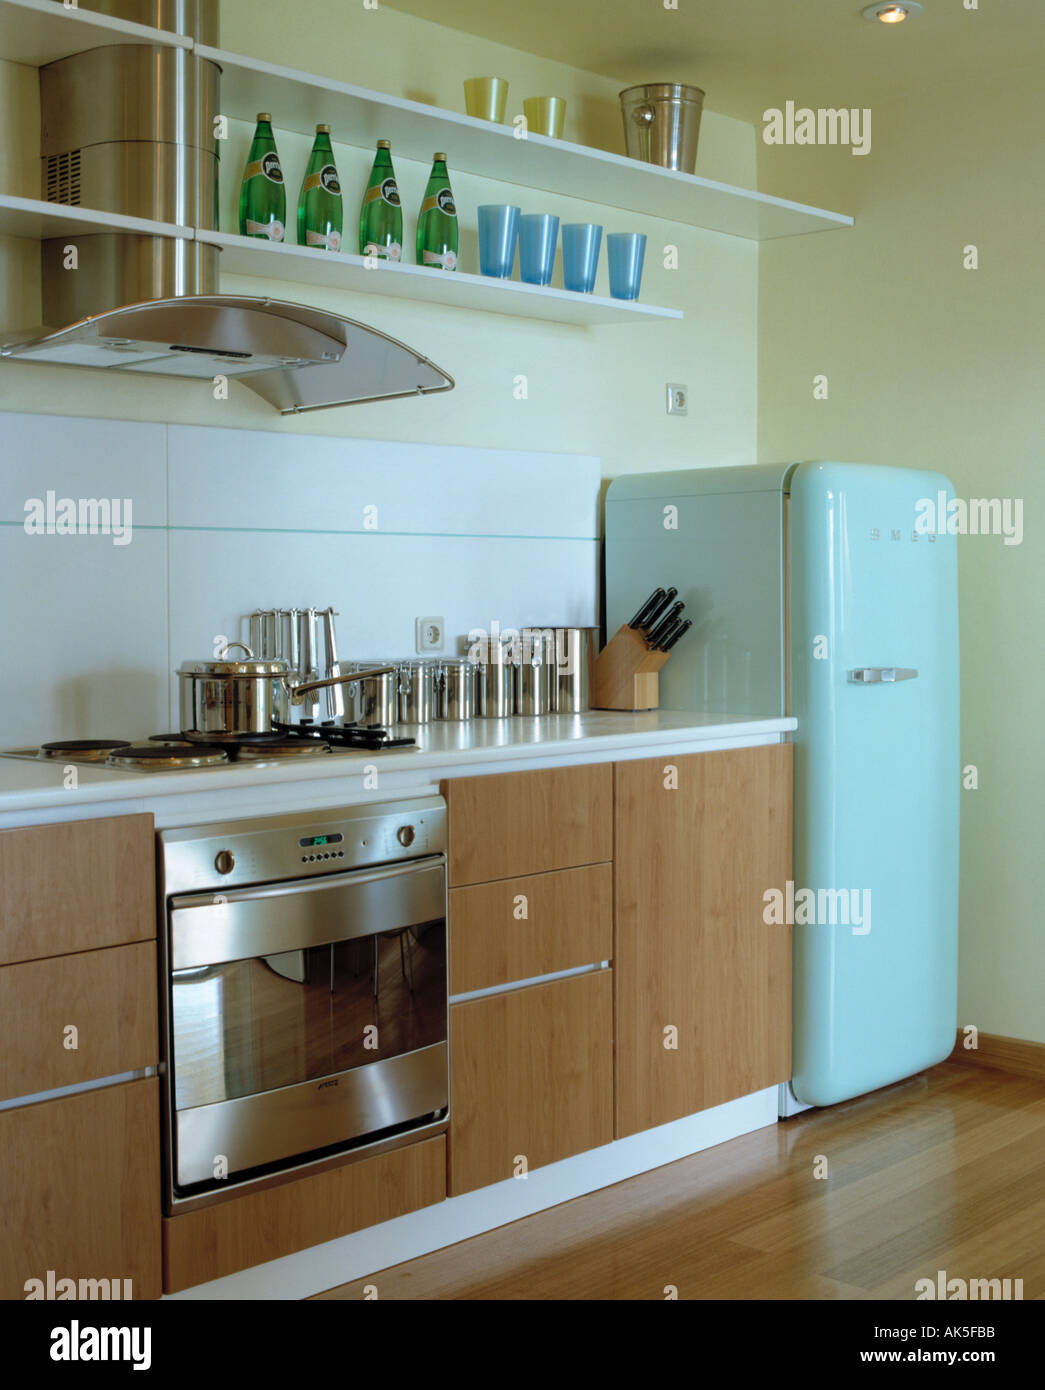 Kitchen Extractor Fans Stock Photos & Kitchen Extractor Fans Stock ...